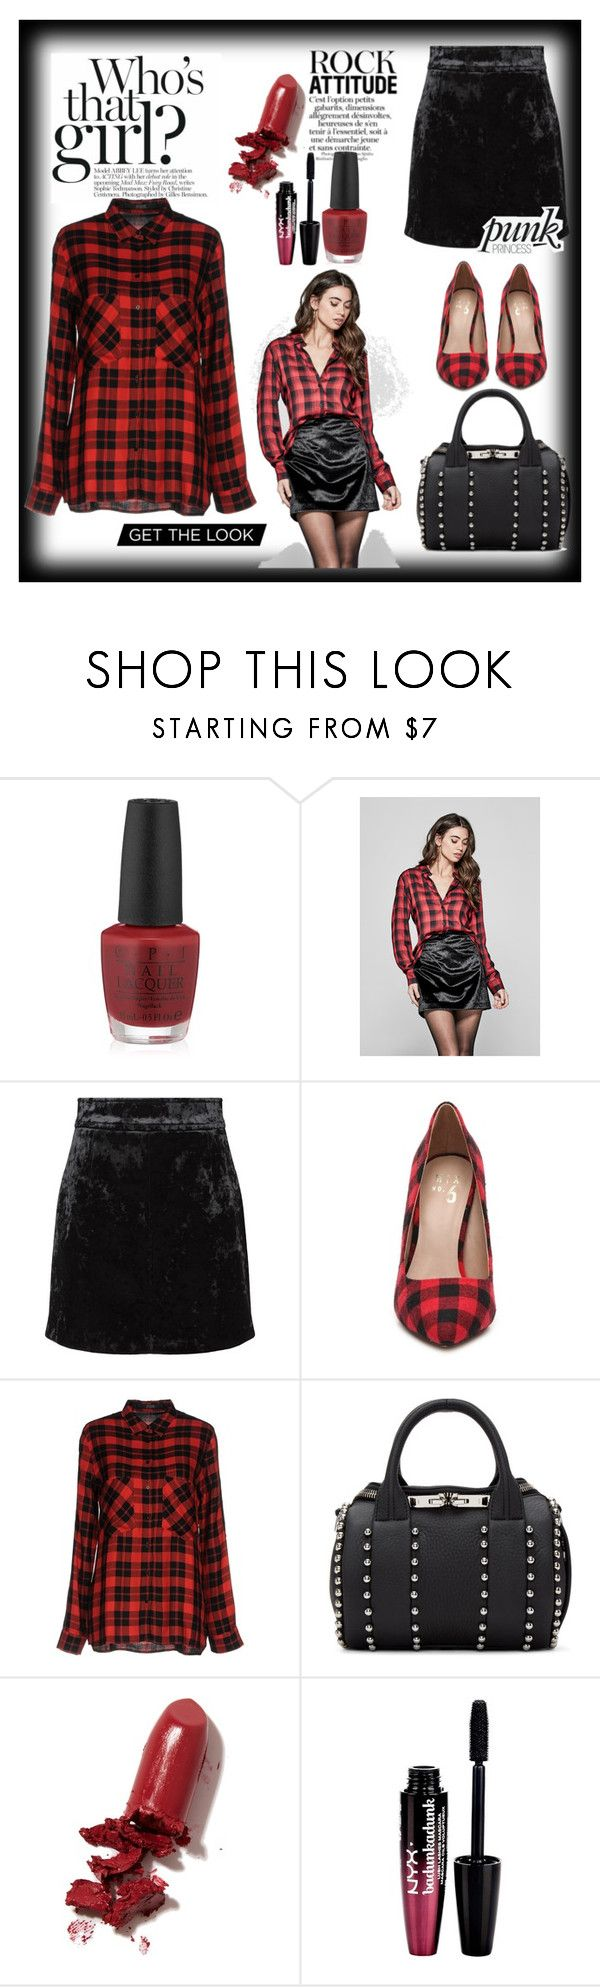 """""""Untitled #210"""" by tracisalazar ❤ liked on Polyvore featuring OPI, GUESS by Marciano, Sandro, GUESS, Alexander Wang, LAQA & Co. and Charlotte Russe"""